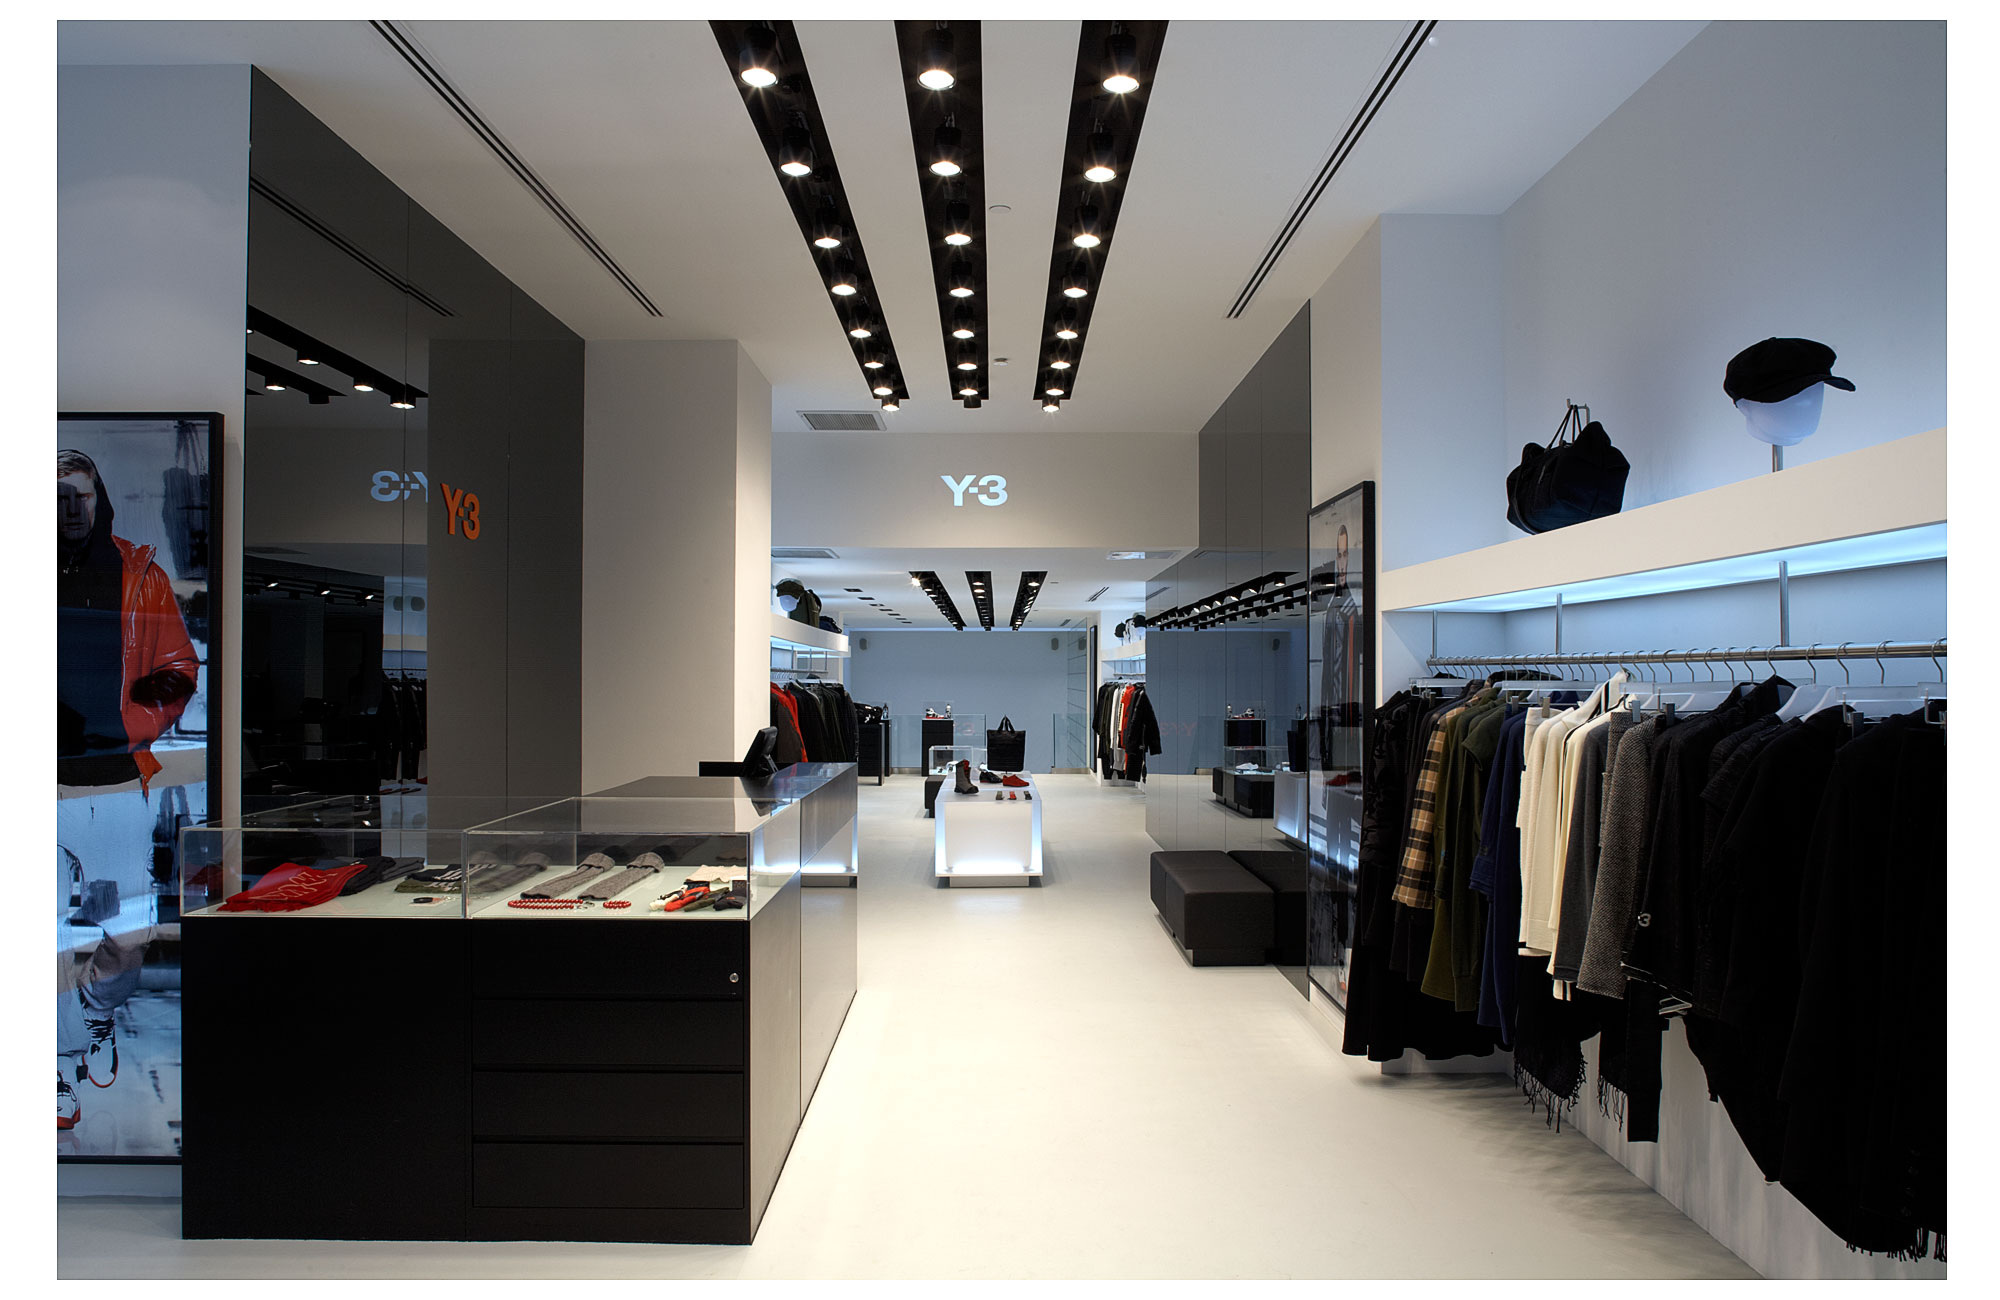 Interior | Adidas Y3 | Brian Park Photo New York | 3